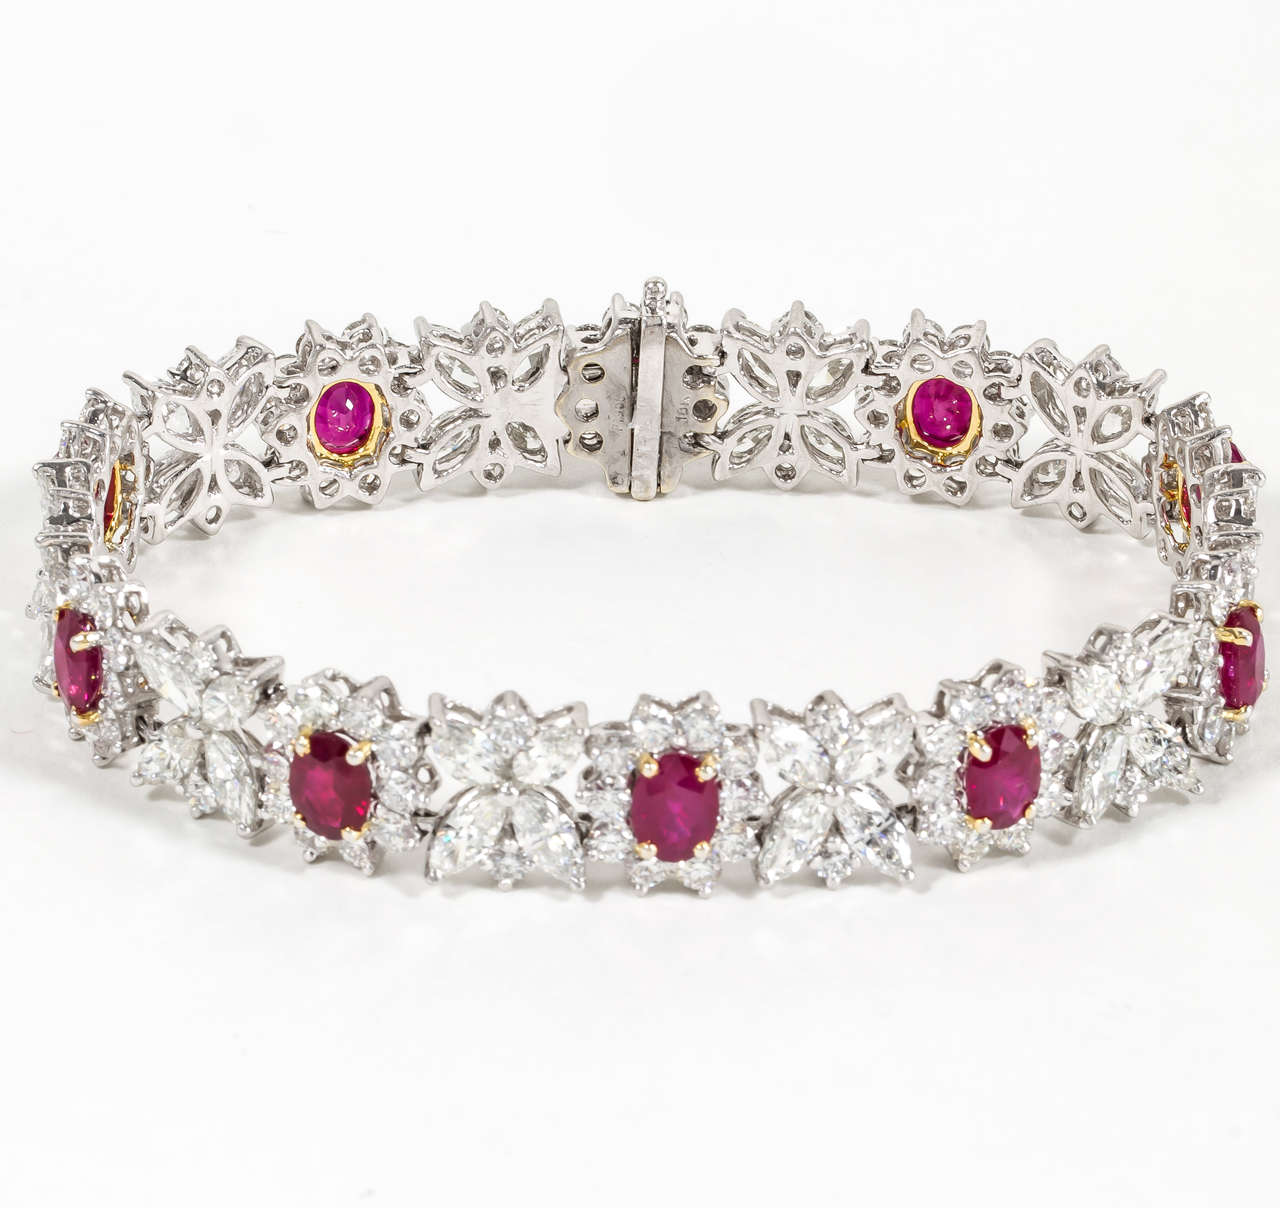 Elegant Ruby And Diamond Bracelet Set In Platinum 11 41 Carats Of Oval Burma Rubys